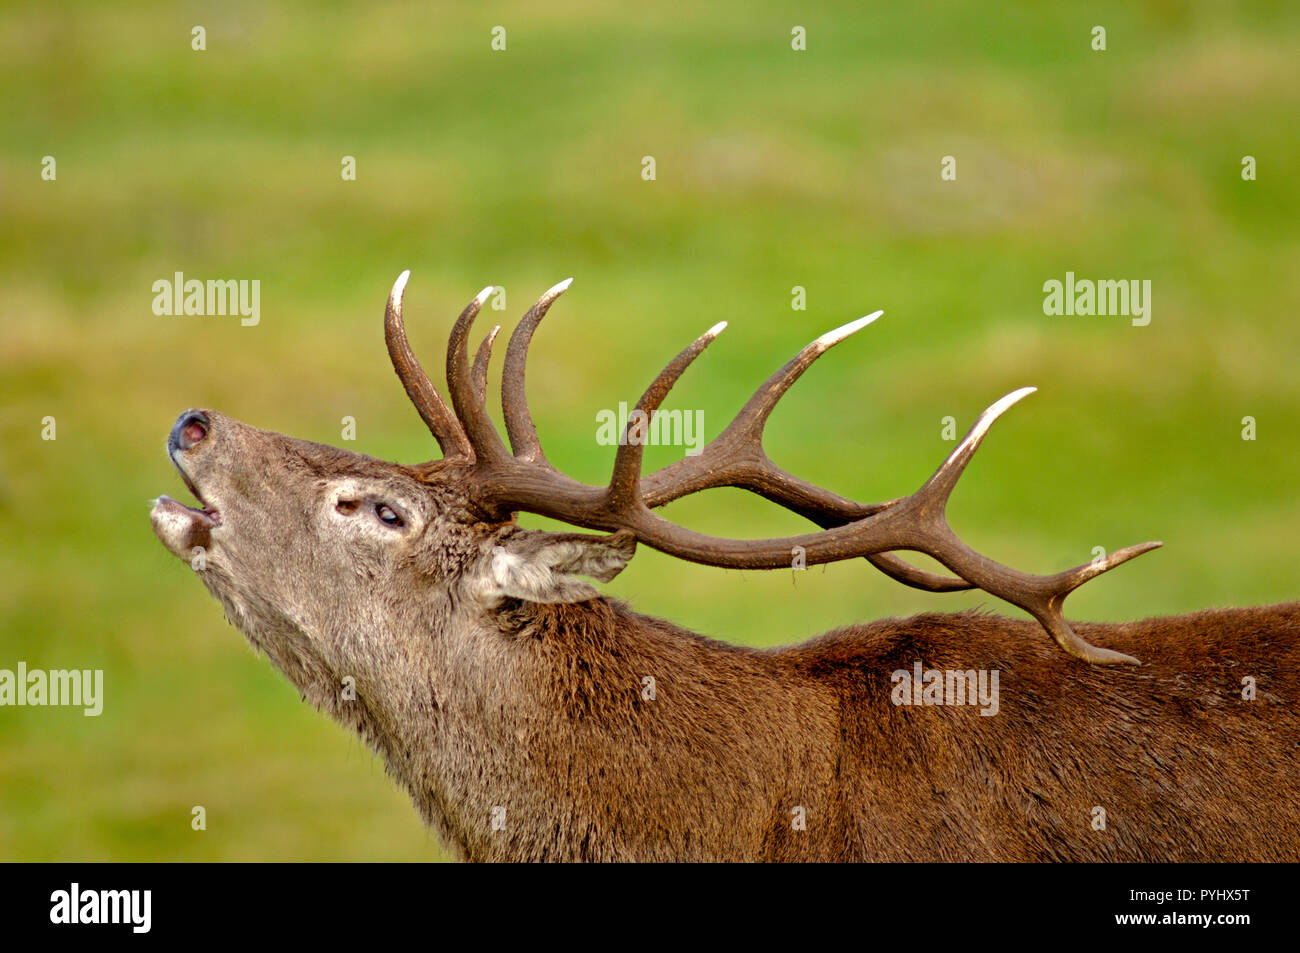 Red Deer stag doing the Autumn Rut bellowing out a challenge to other competing males for access to the harem of females which can result in fights. Stock Photo